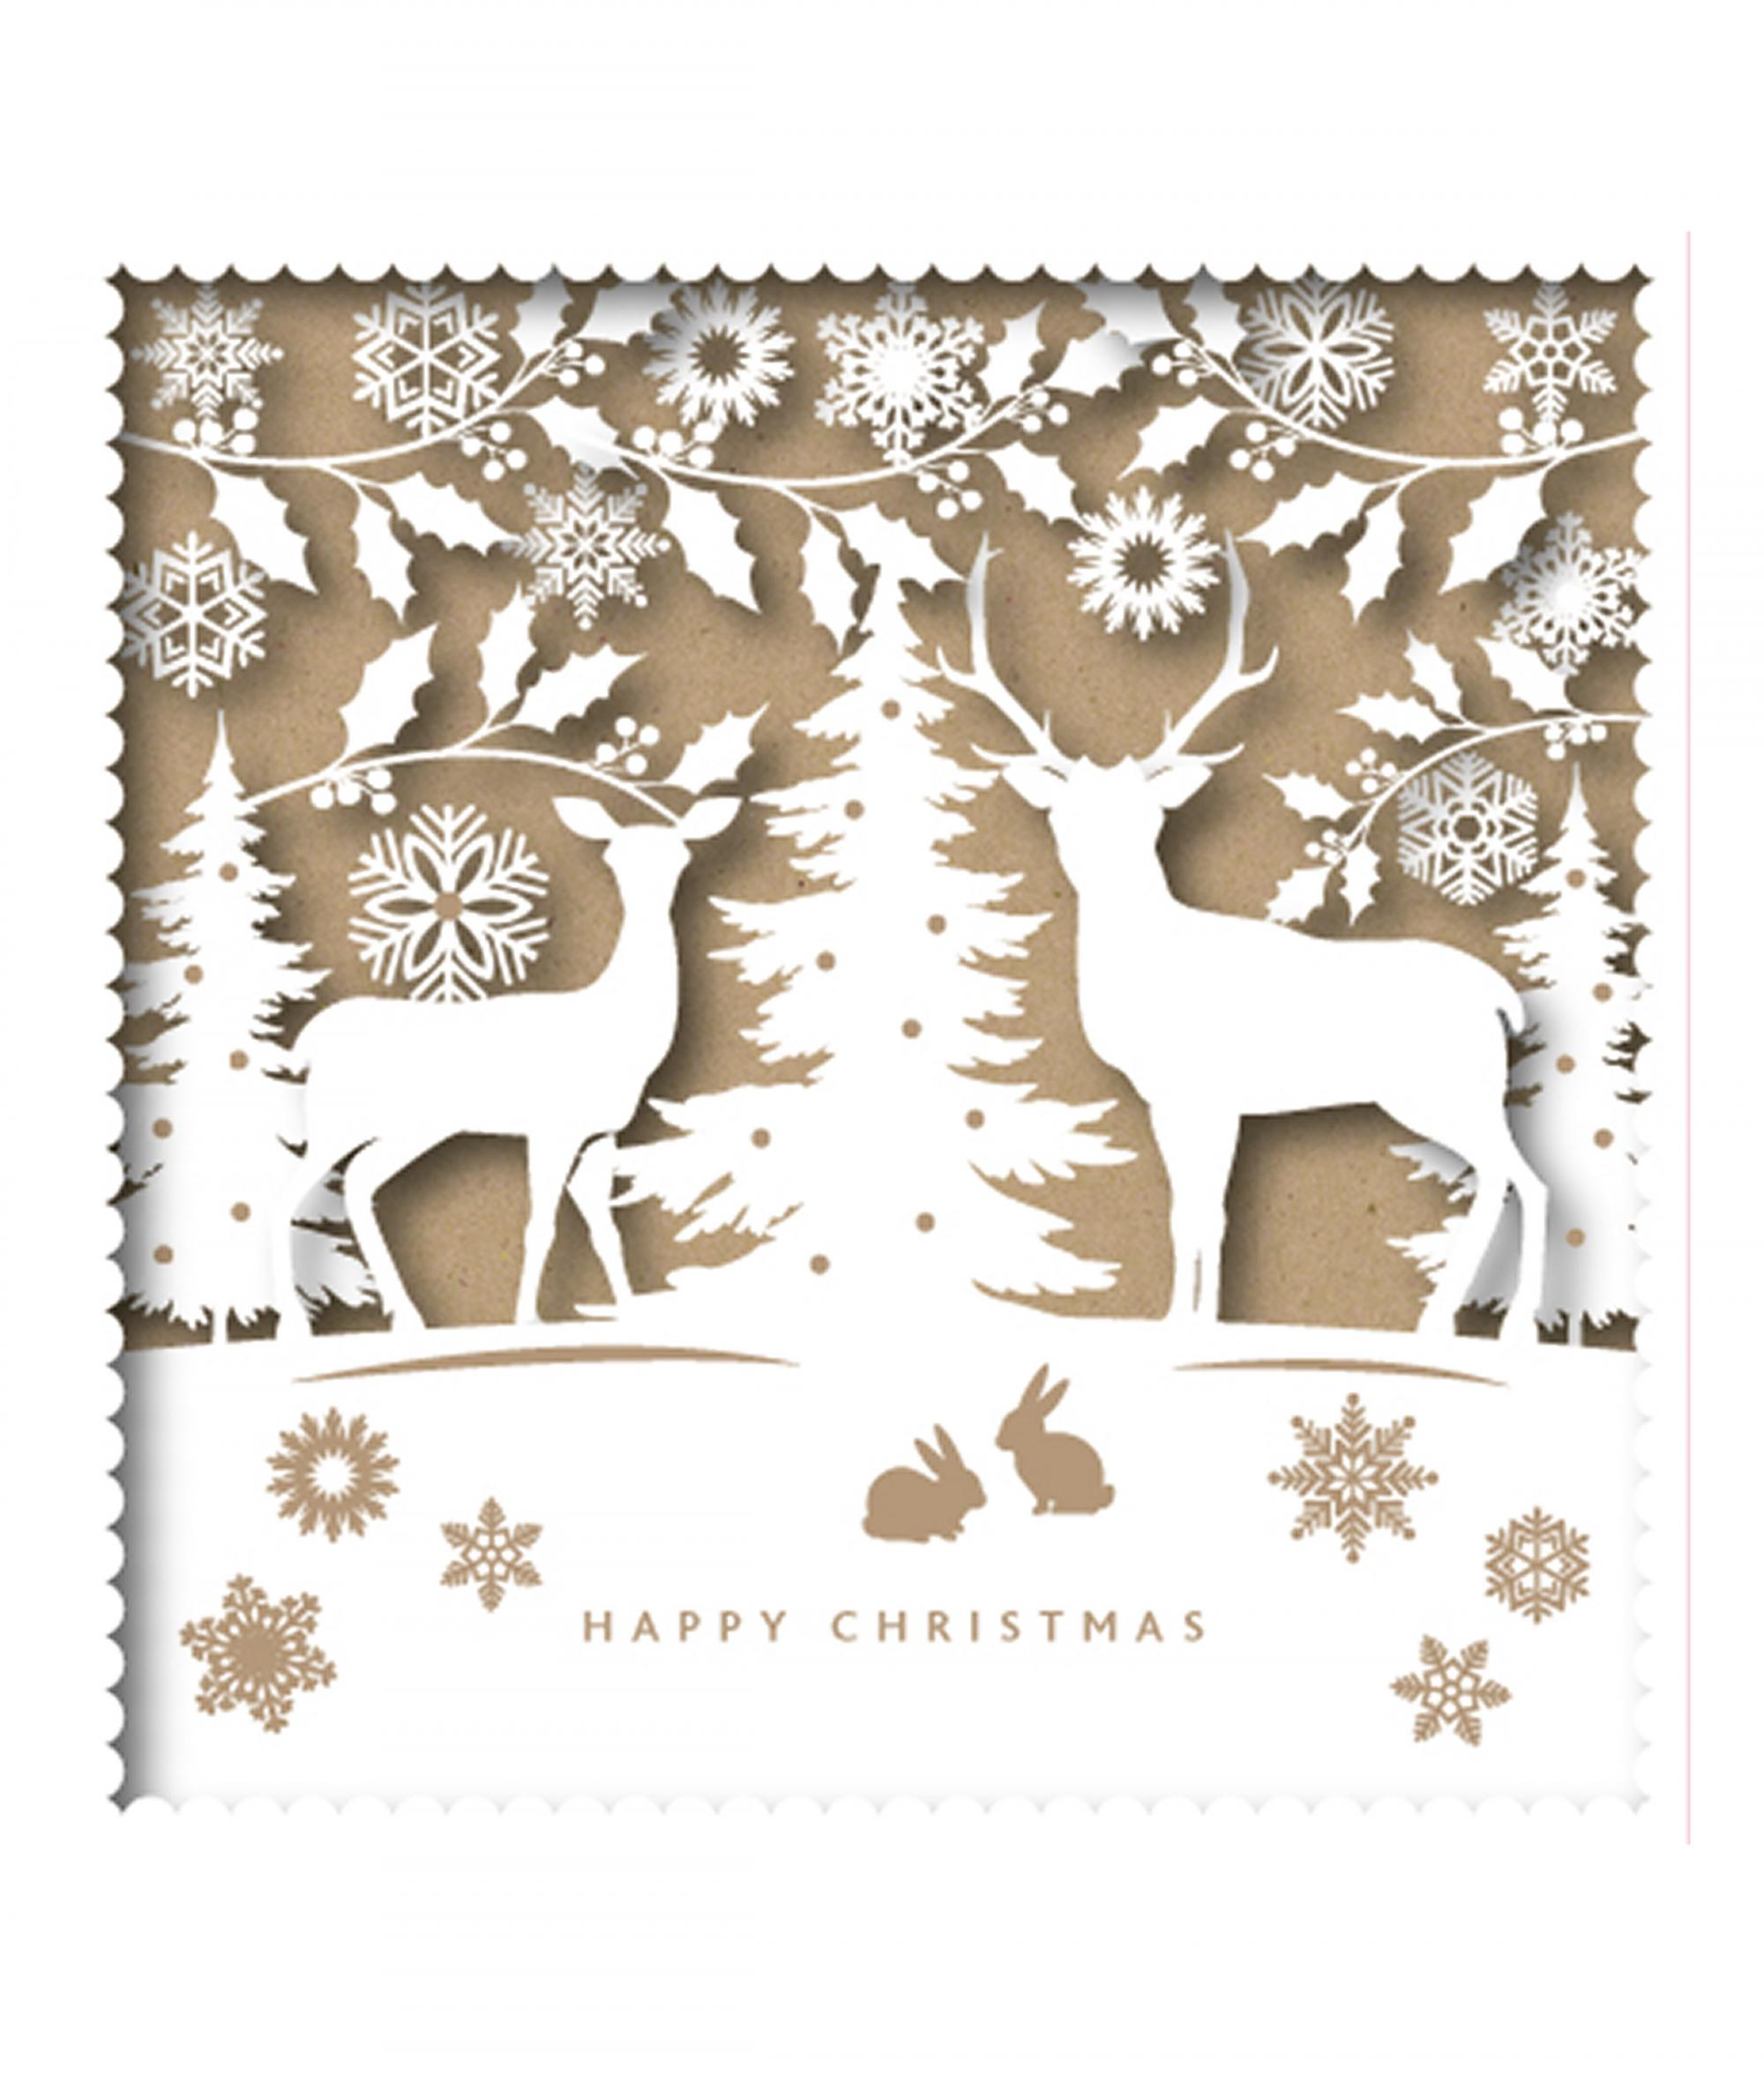 silhouette reindeer cancer research uk christmas card - Deer Christmas Cards